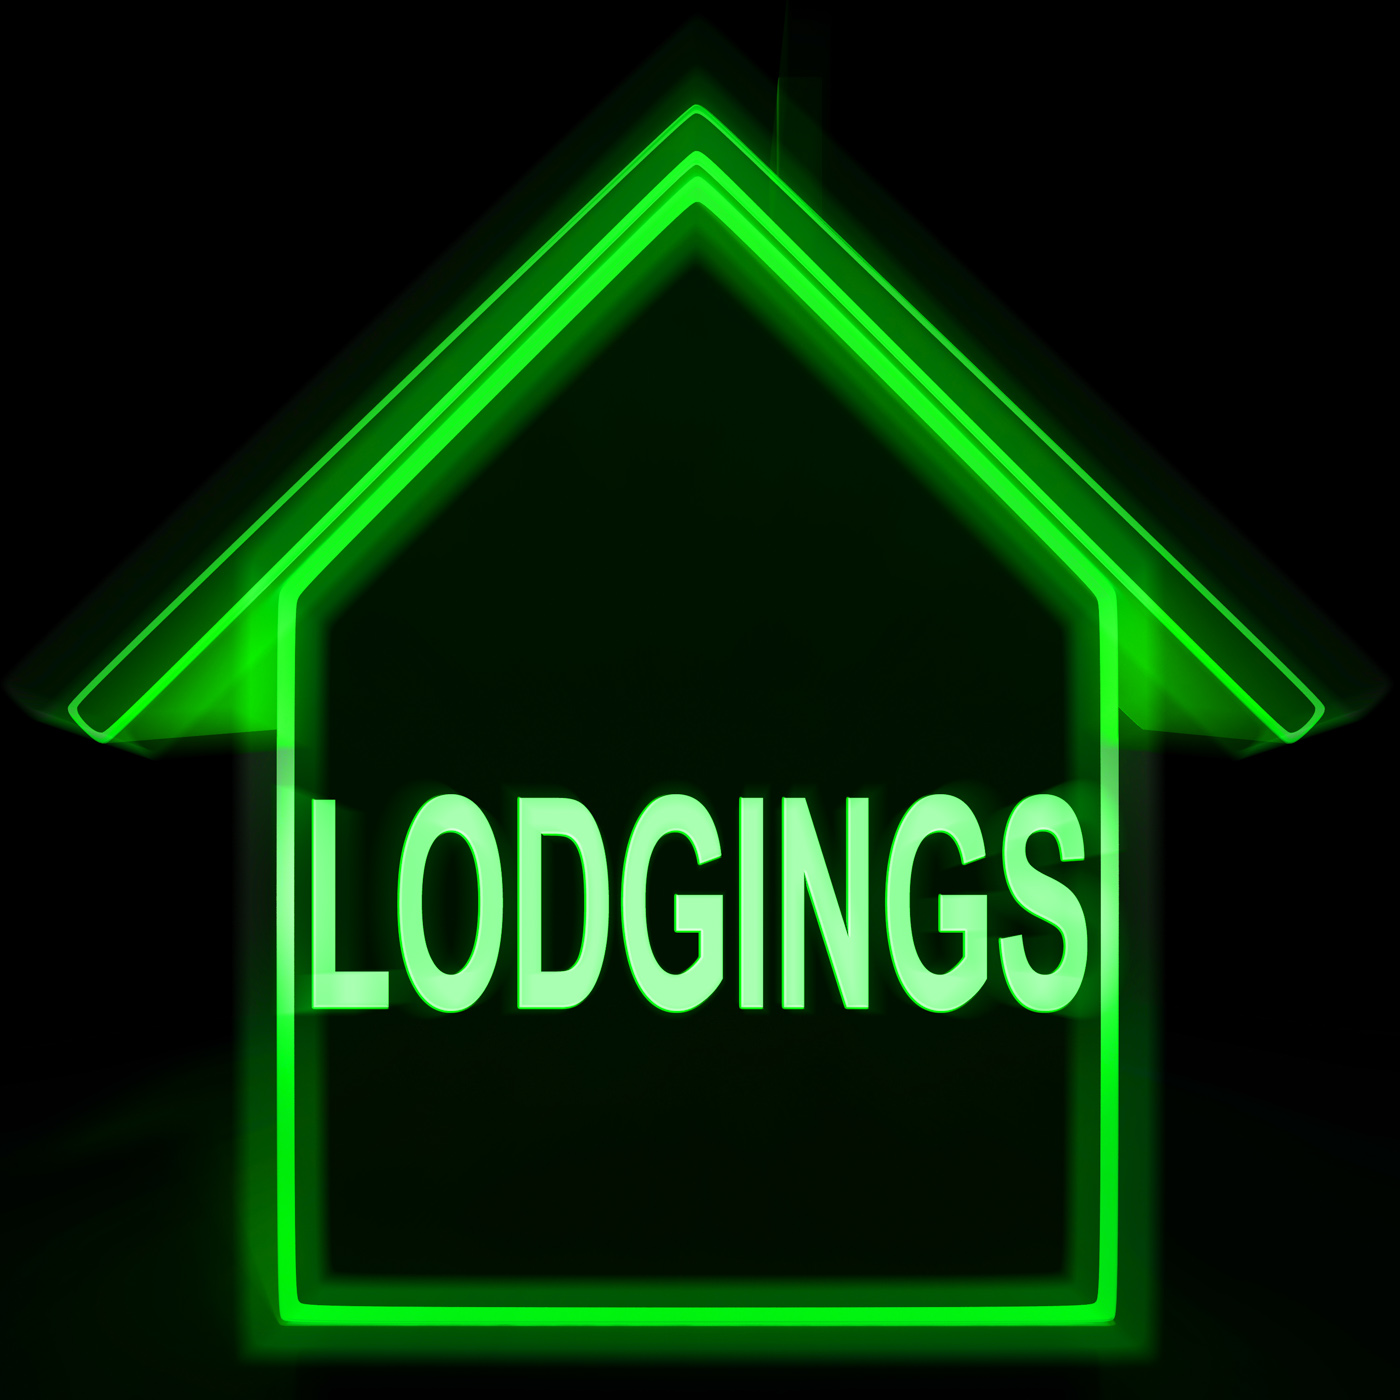 Lodgings home means rooms accommodation or vacancies photo